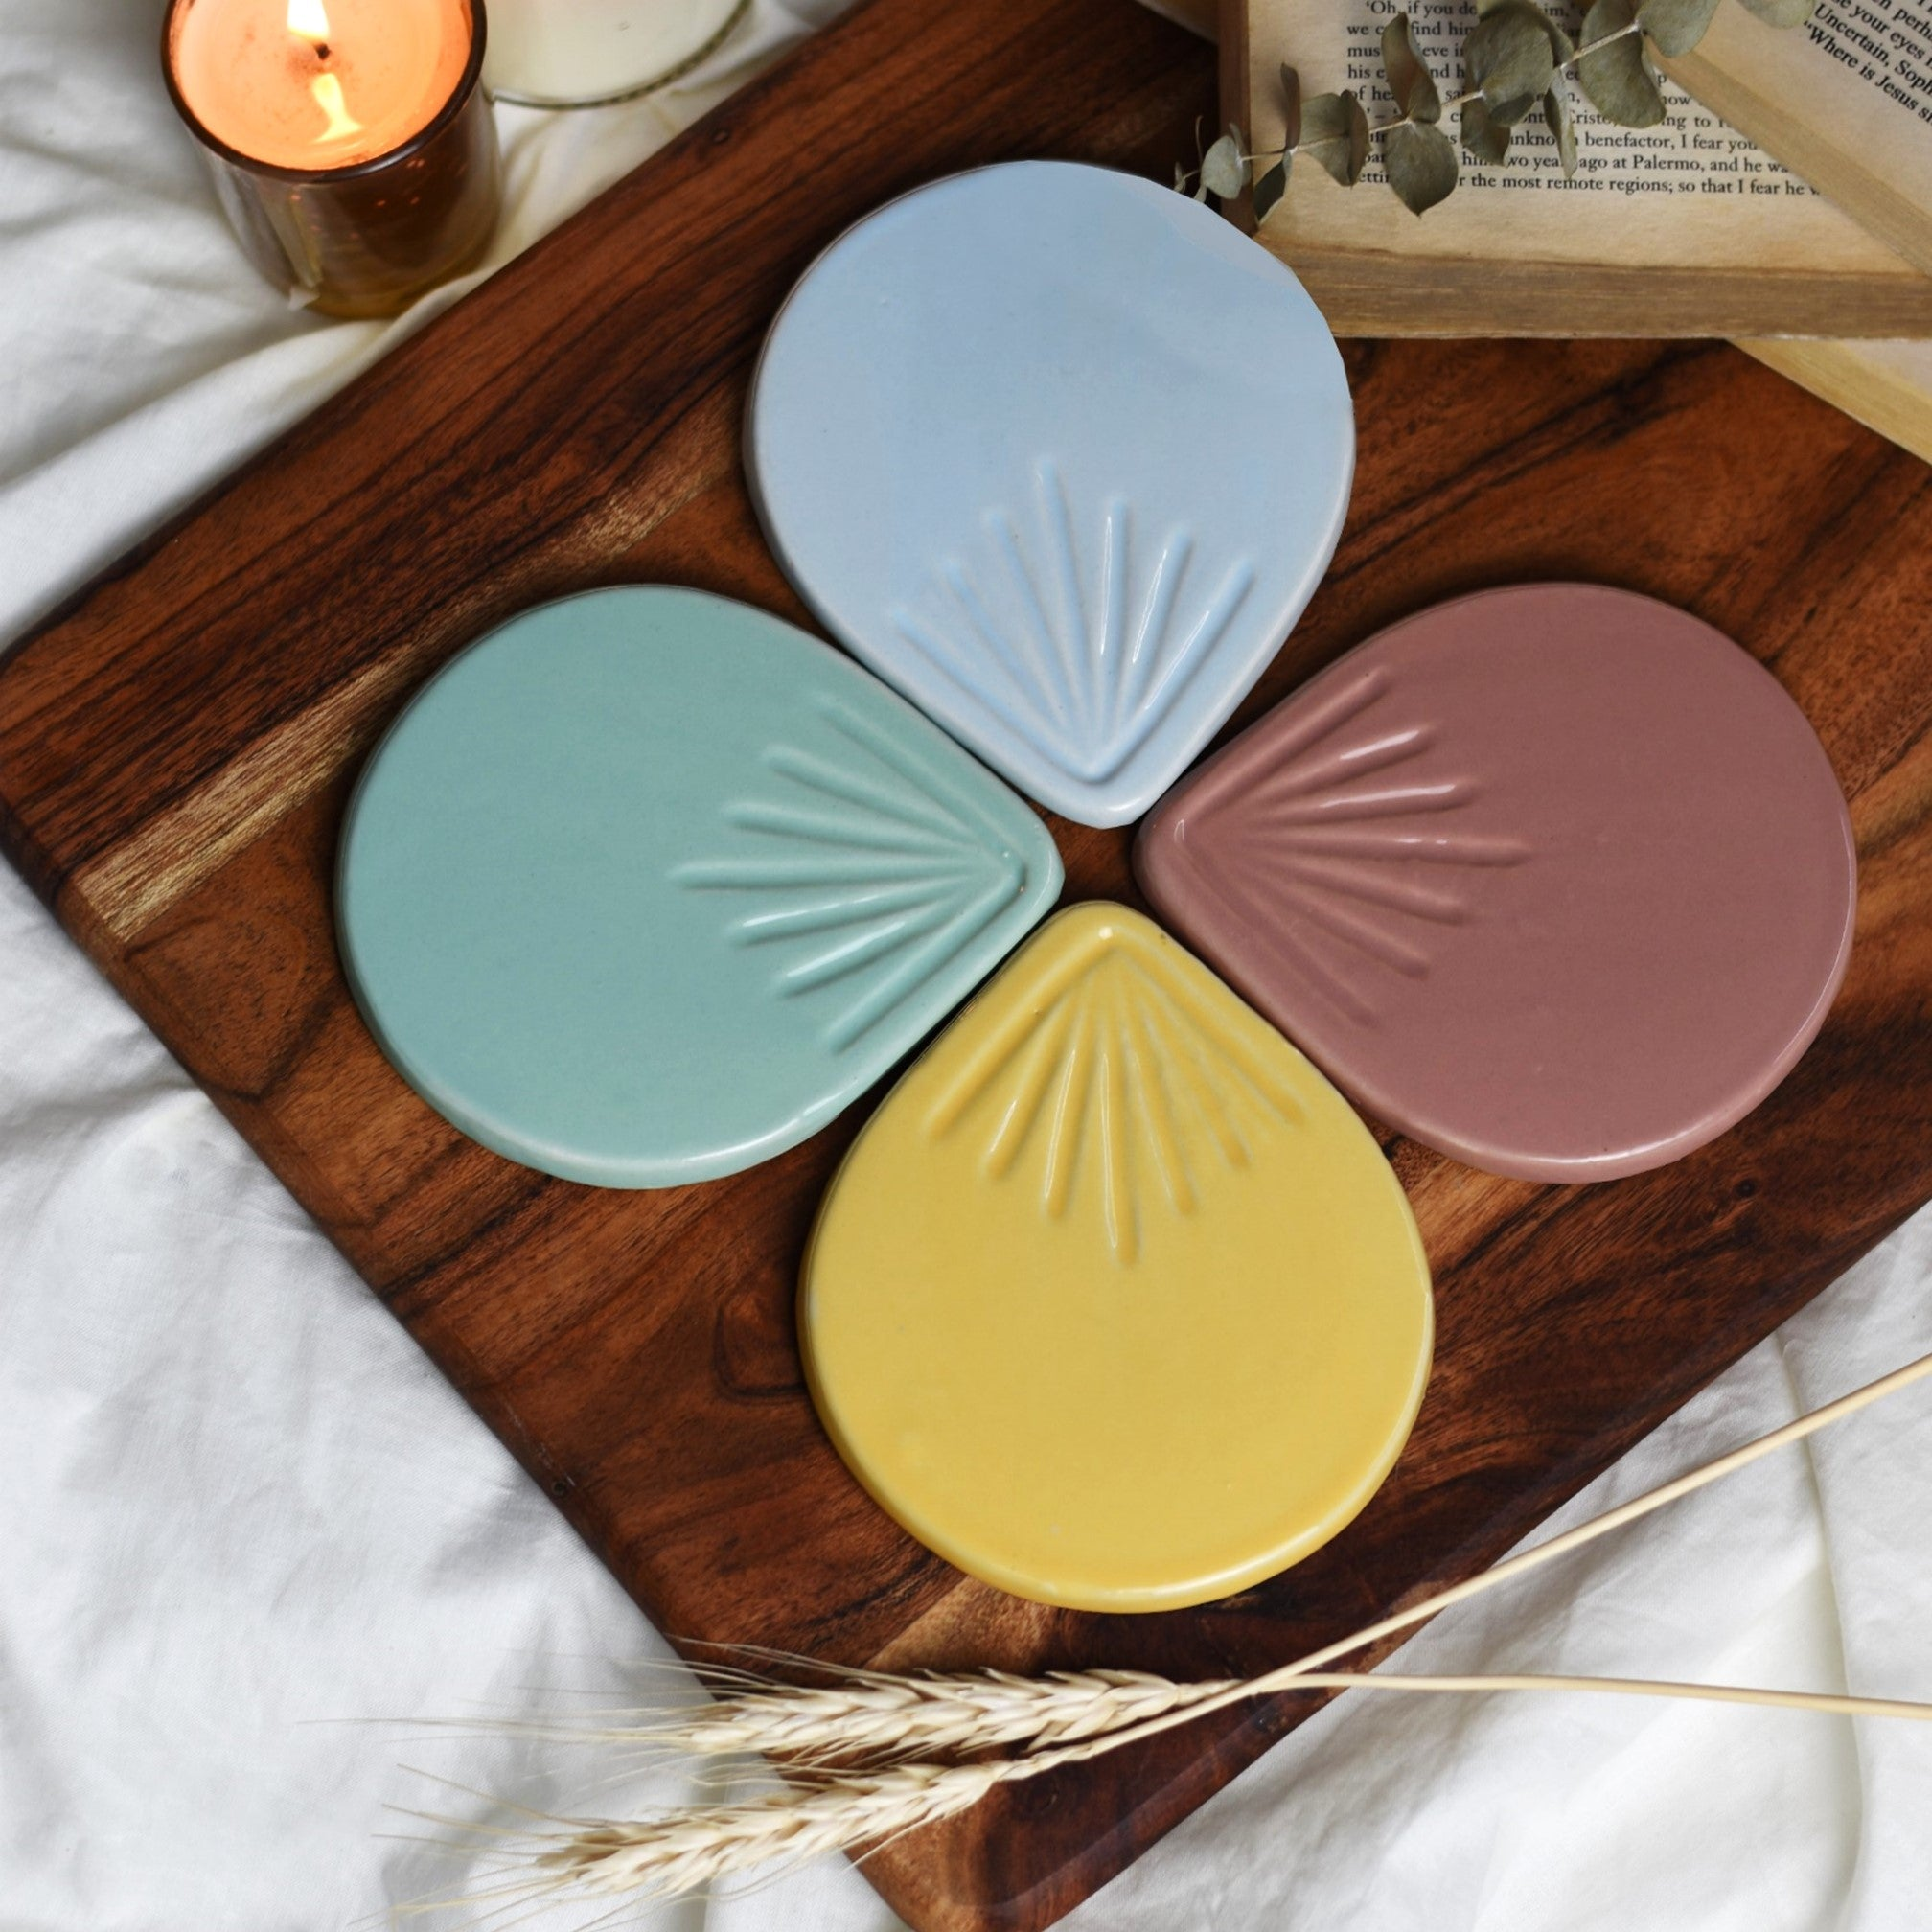 Etched Raindrop Ceramic Coasters - Set of 4 Glossy Pastel Colours 1 BHK Interiors